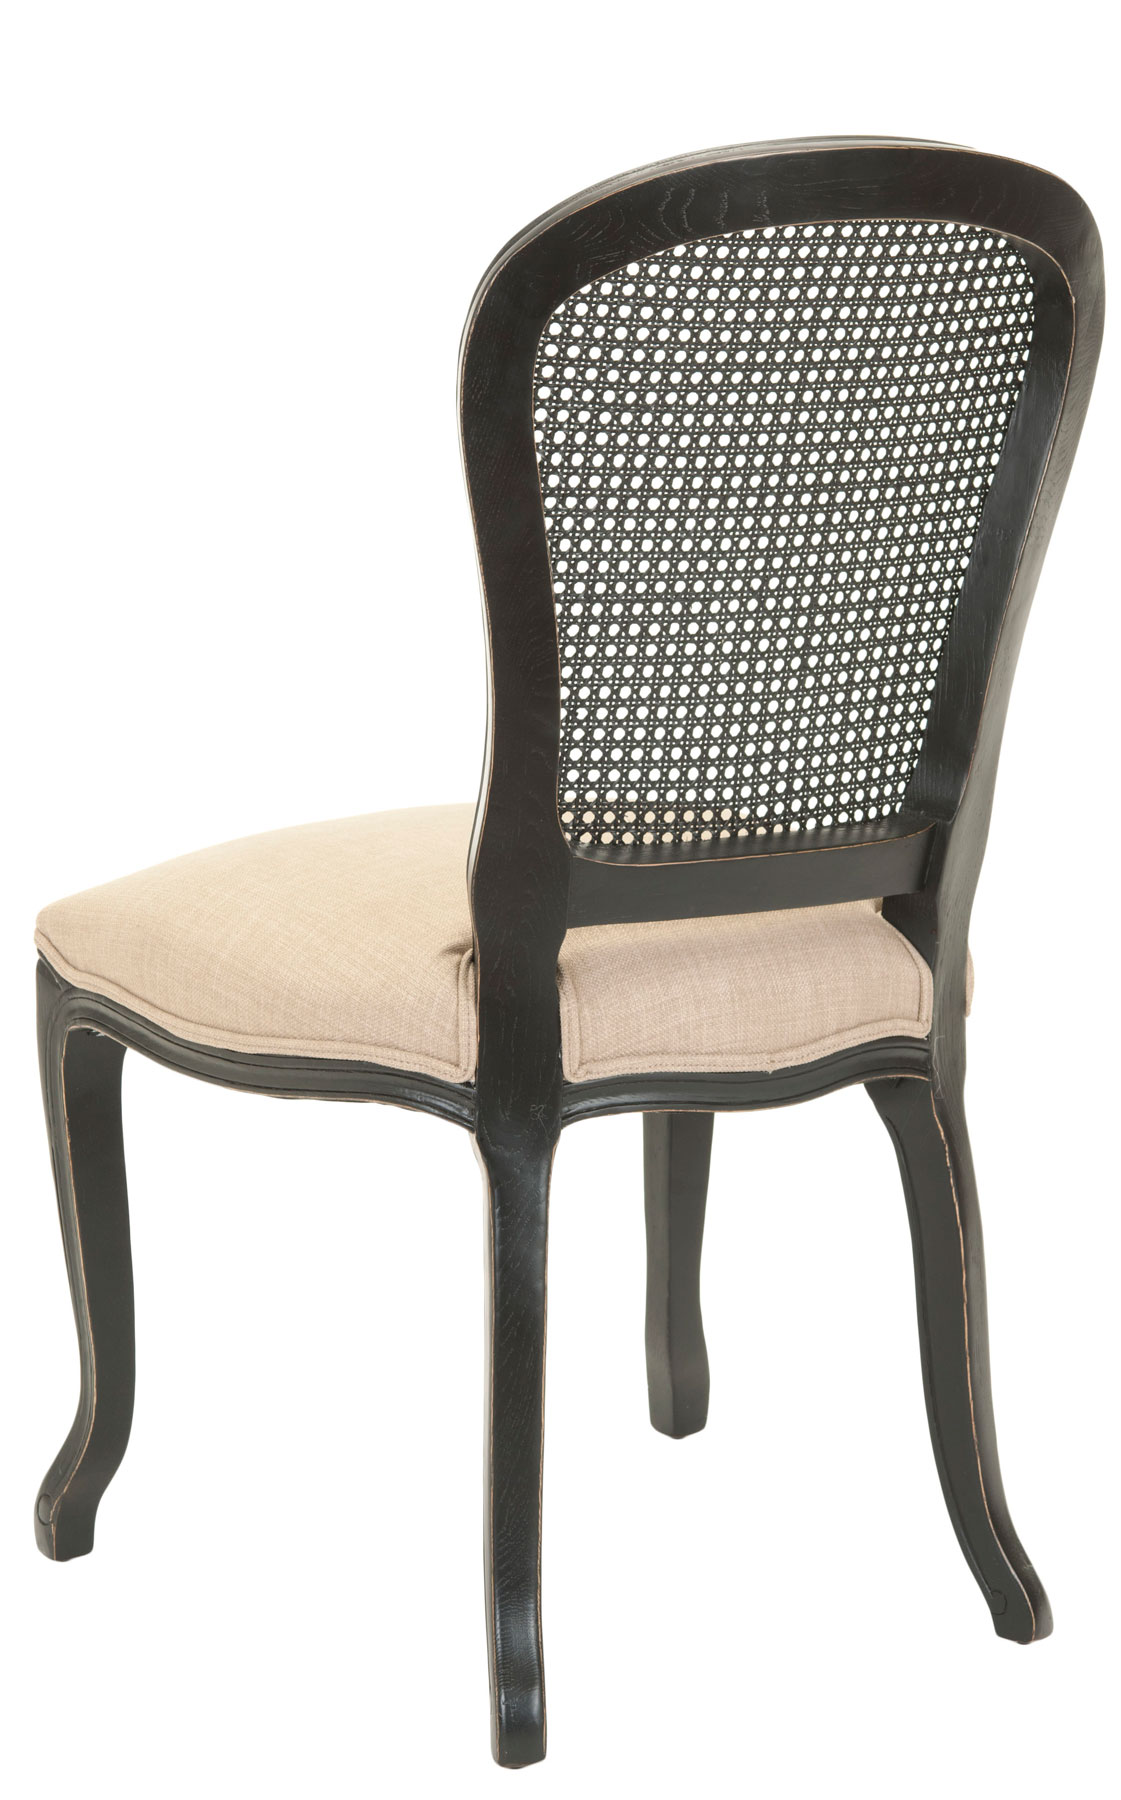 Seagrass Dining Chairs Seagrass Dining Chair Dining Room Ideas